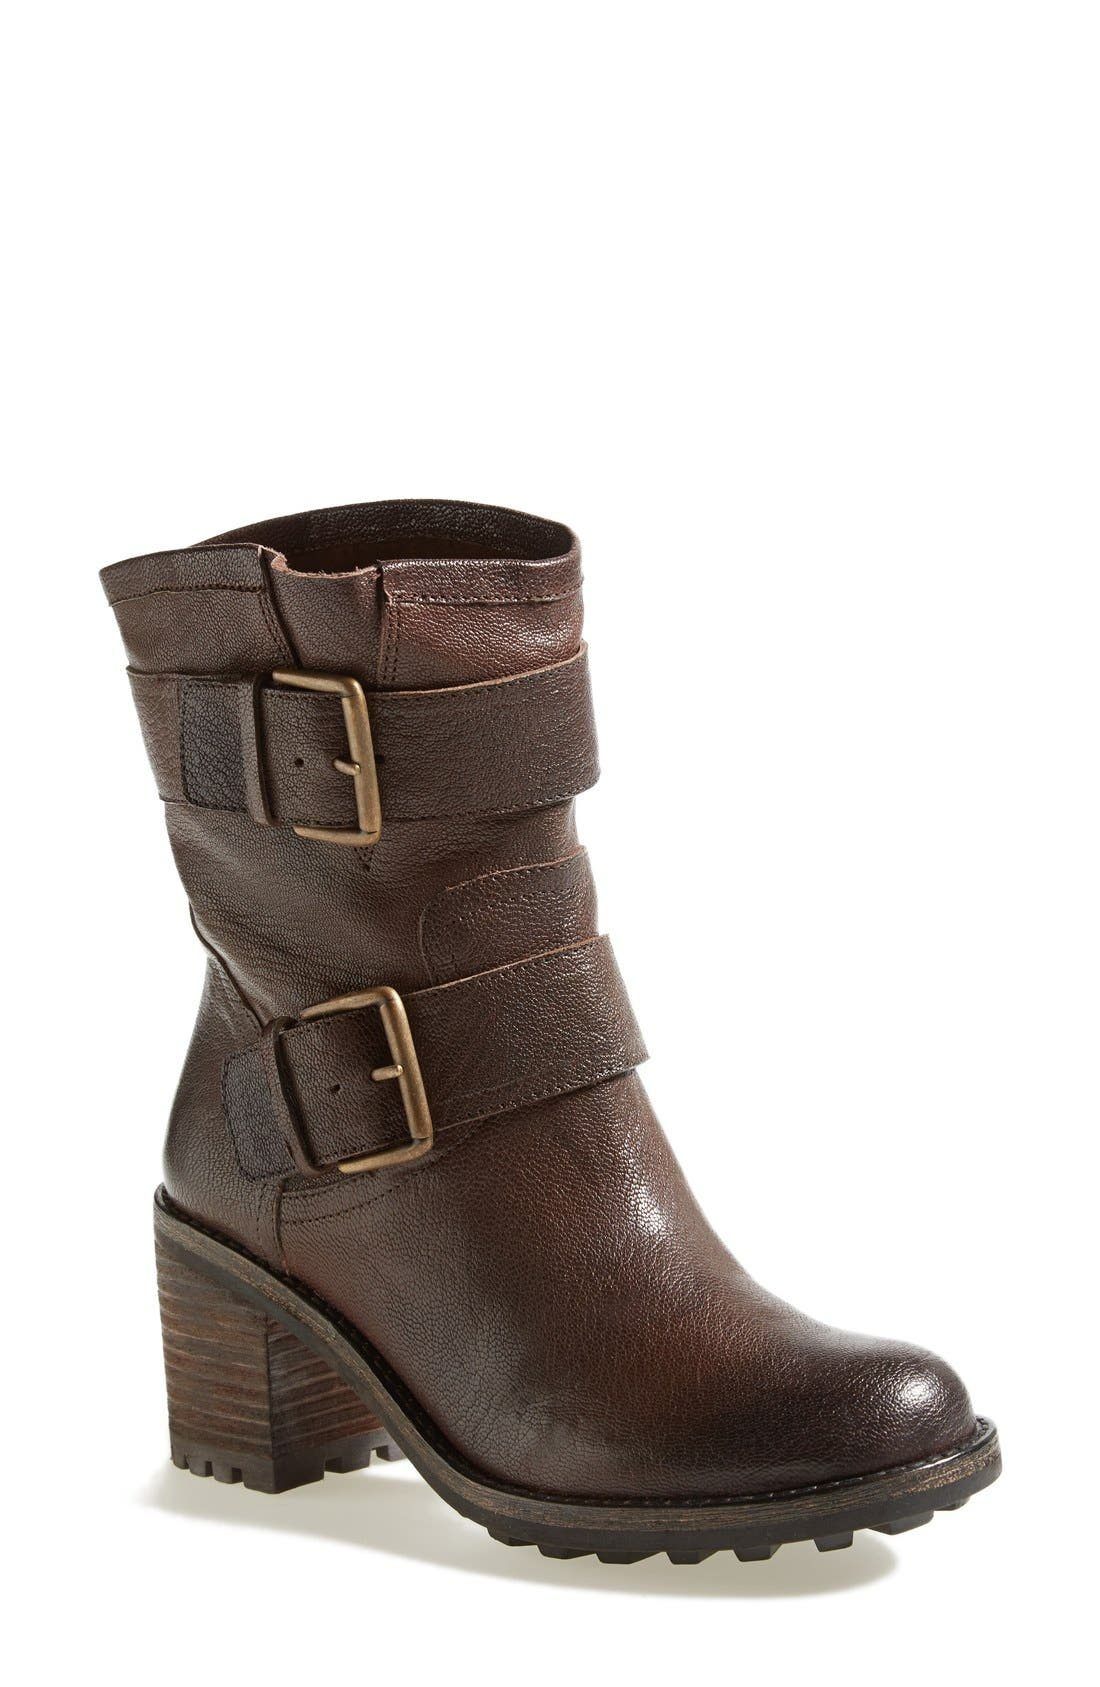 Alternate Image 1 Selected - Sam Edelman 'Troy' Moto Boot (Women)